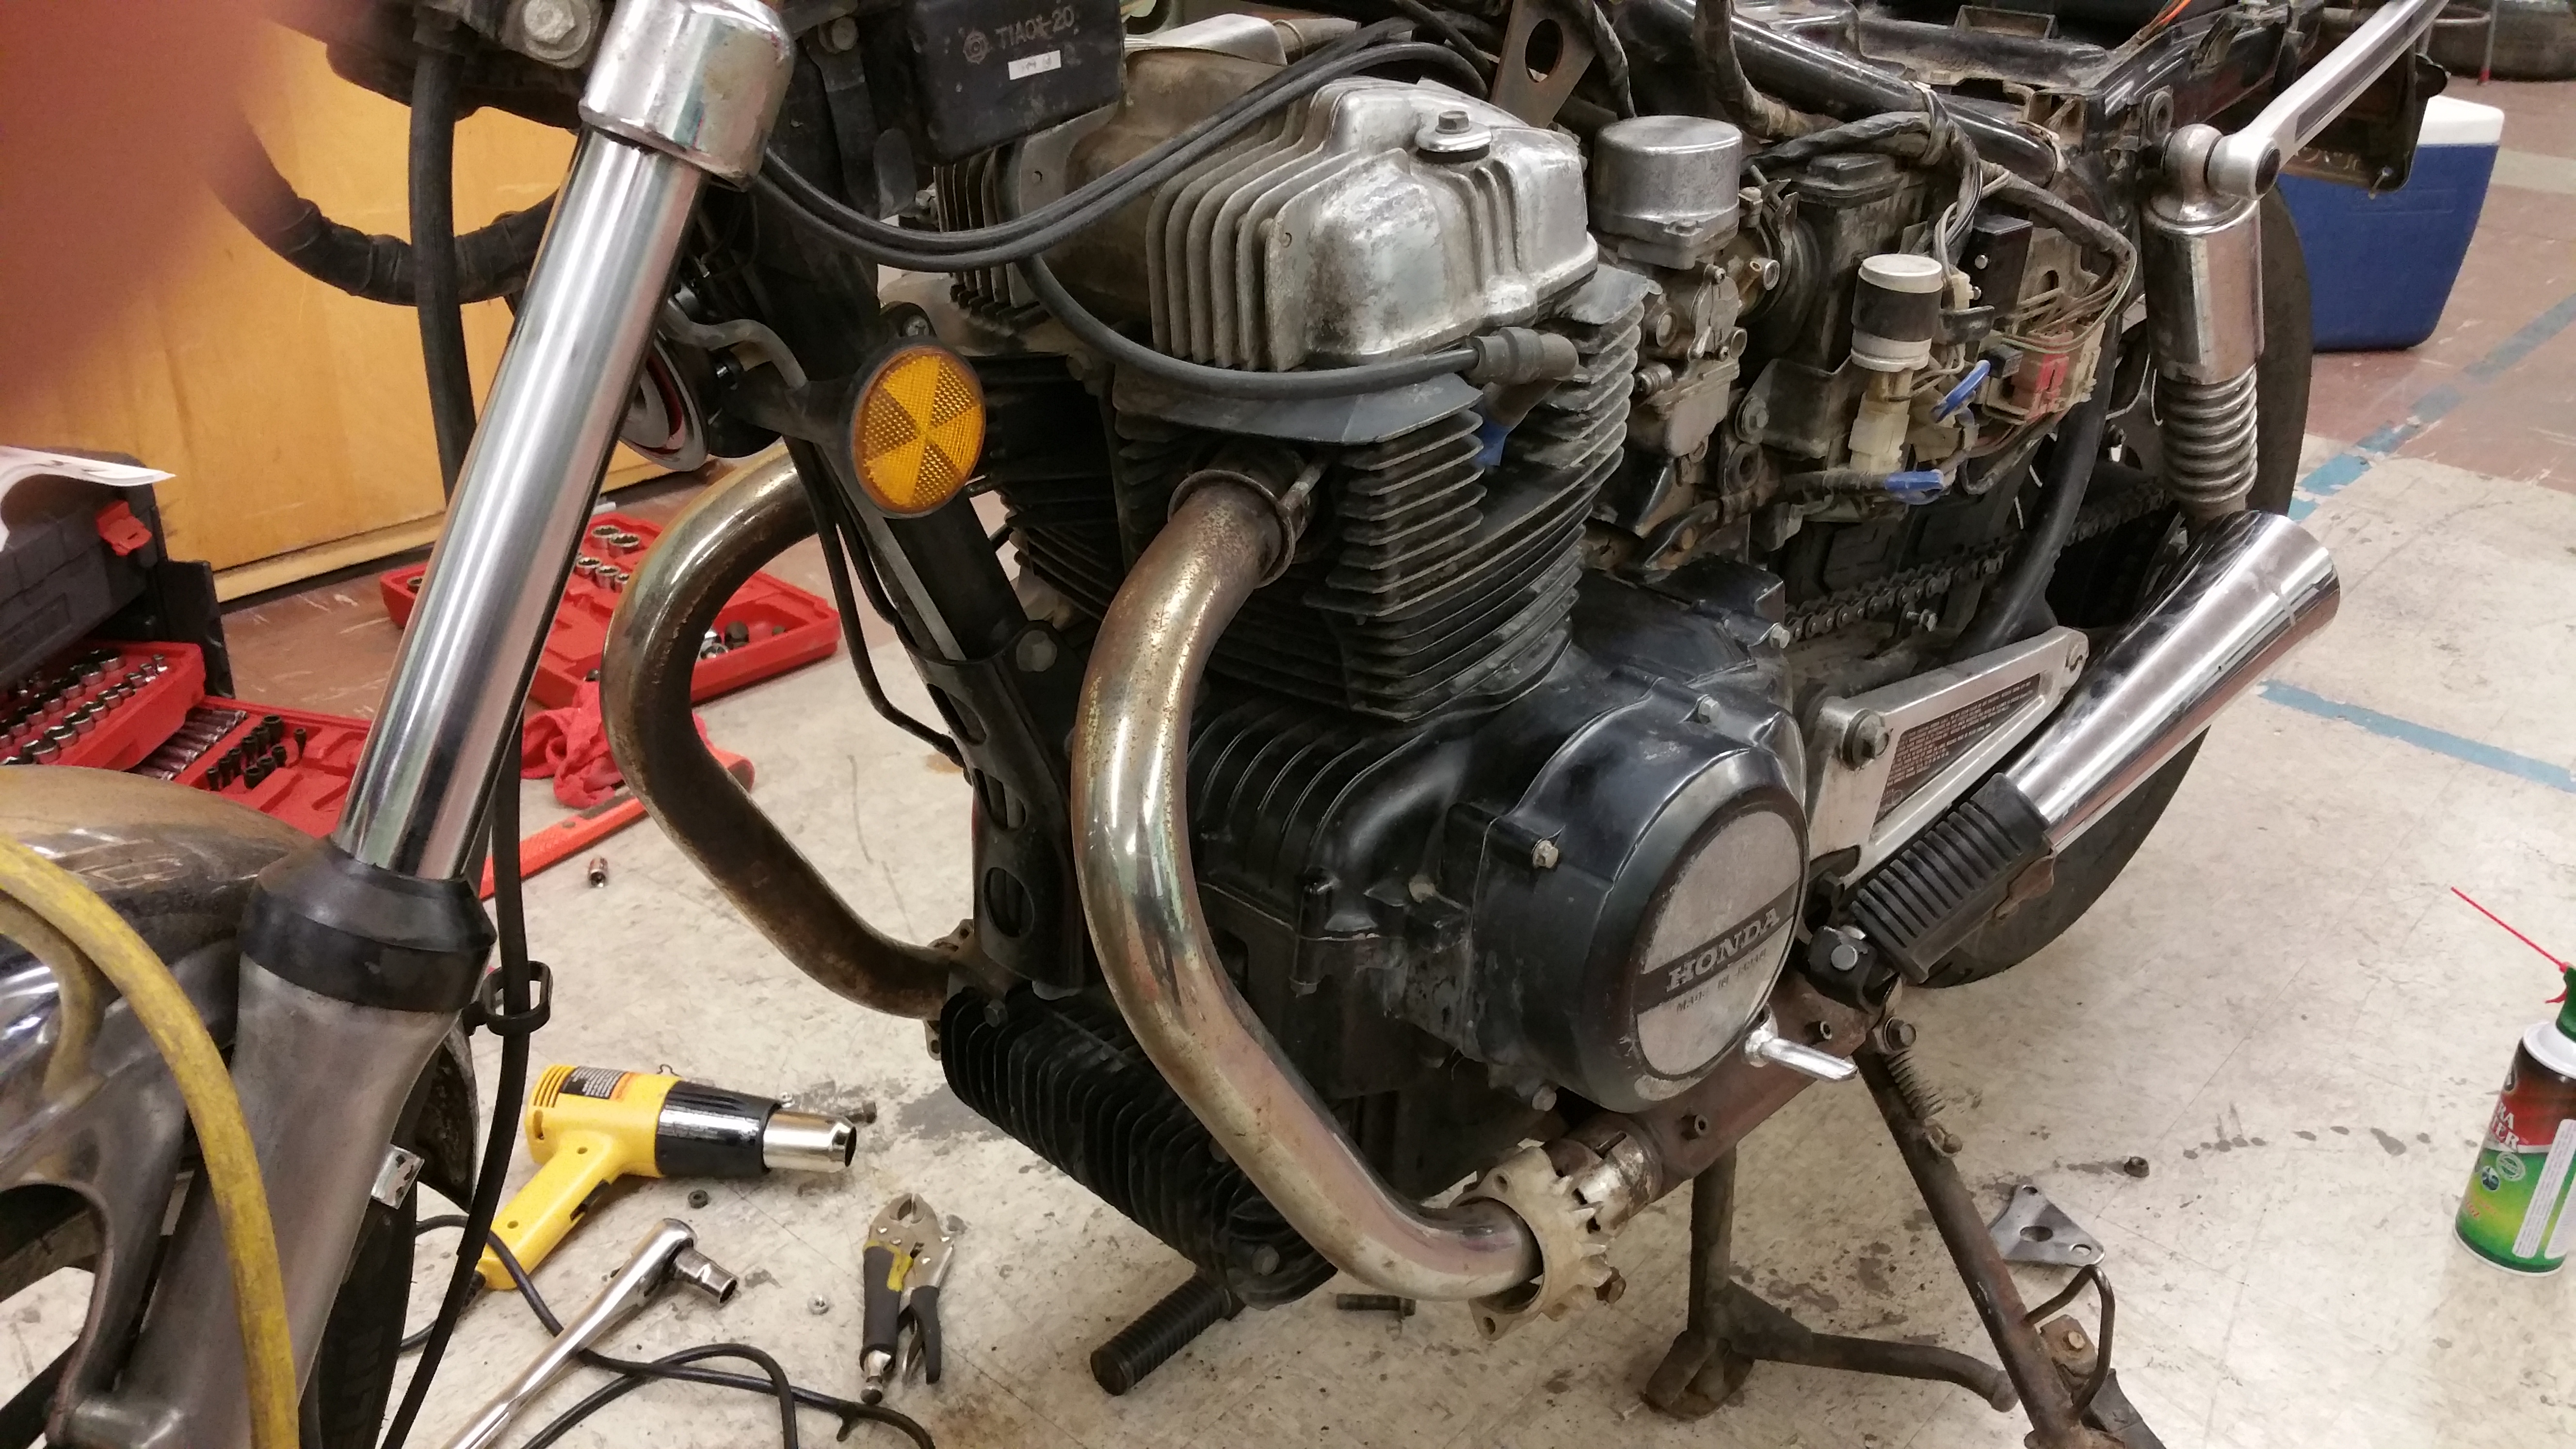 1982 CB450SC, How to Remove Exhaust?